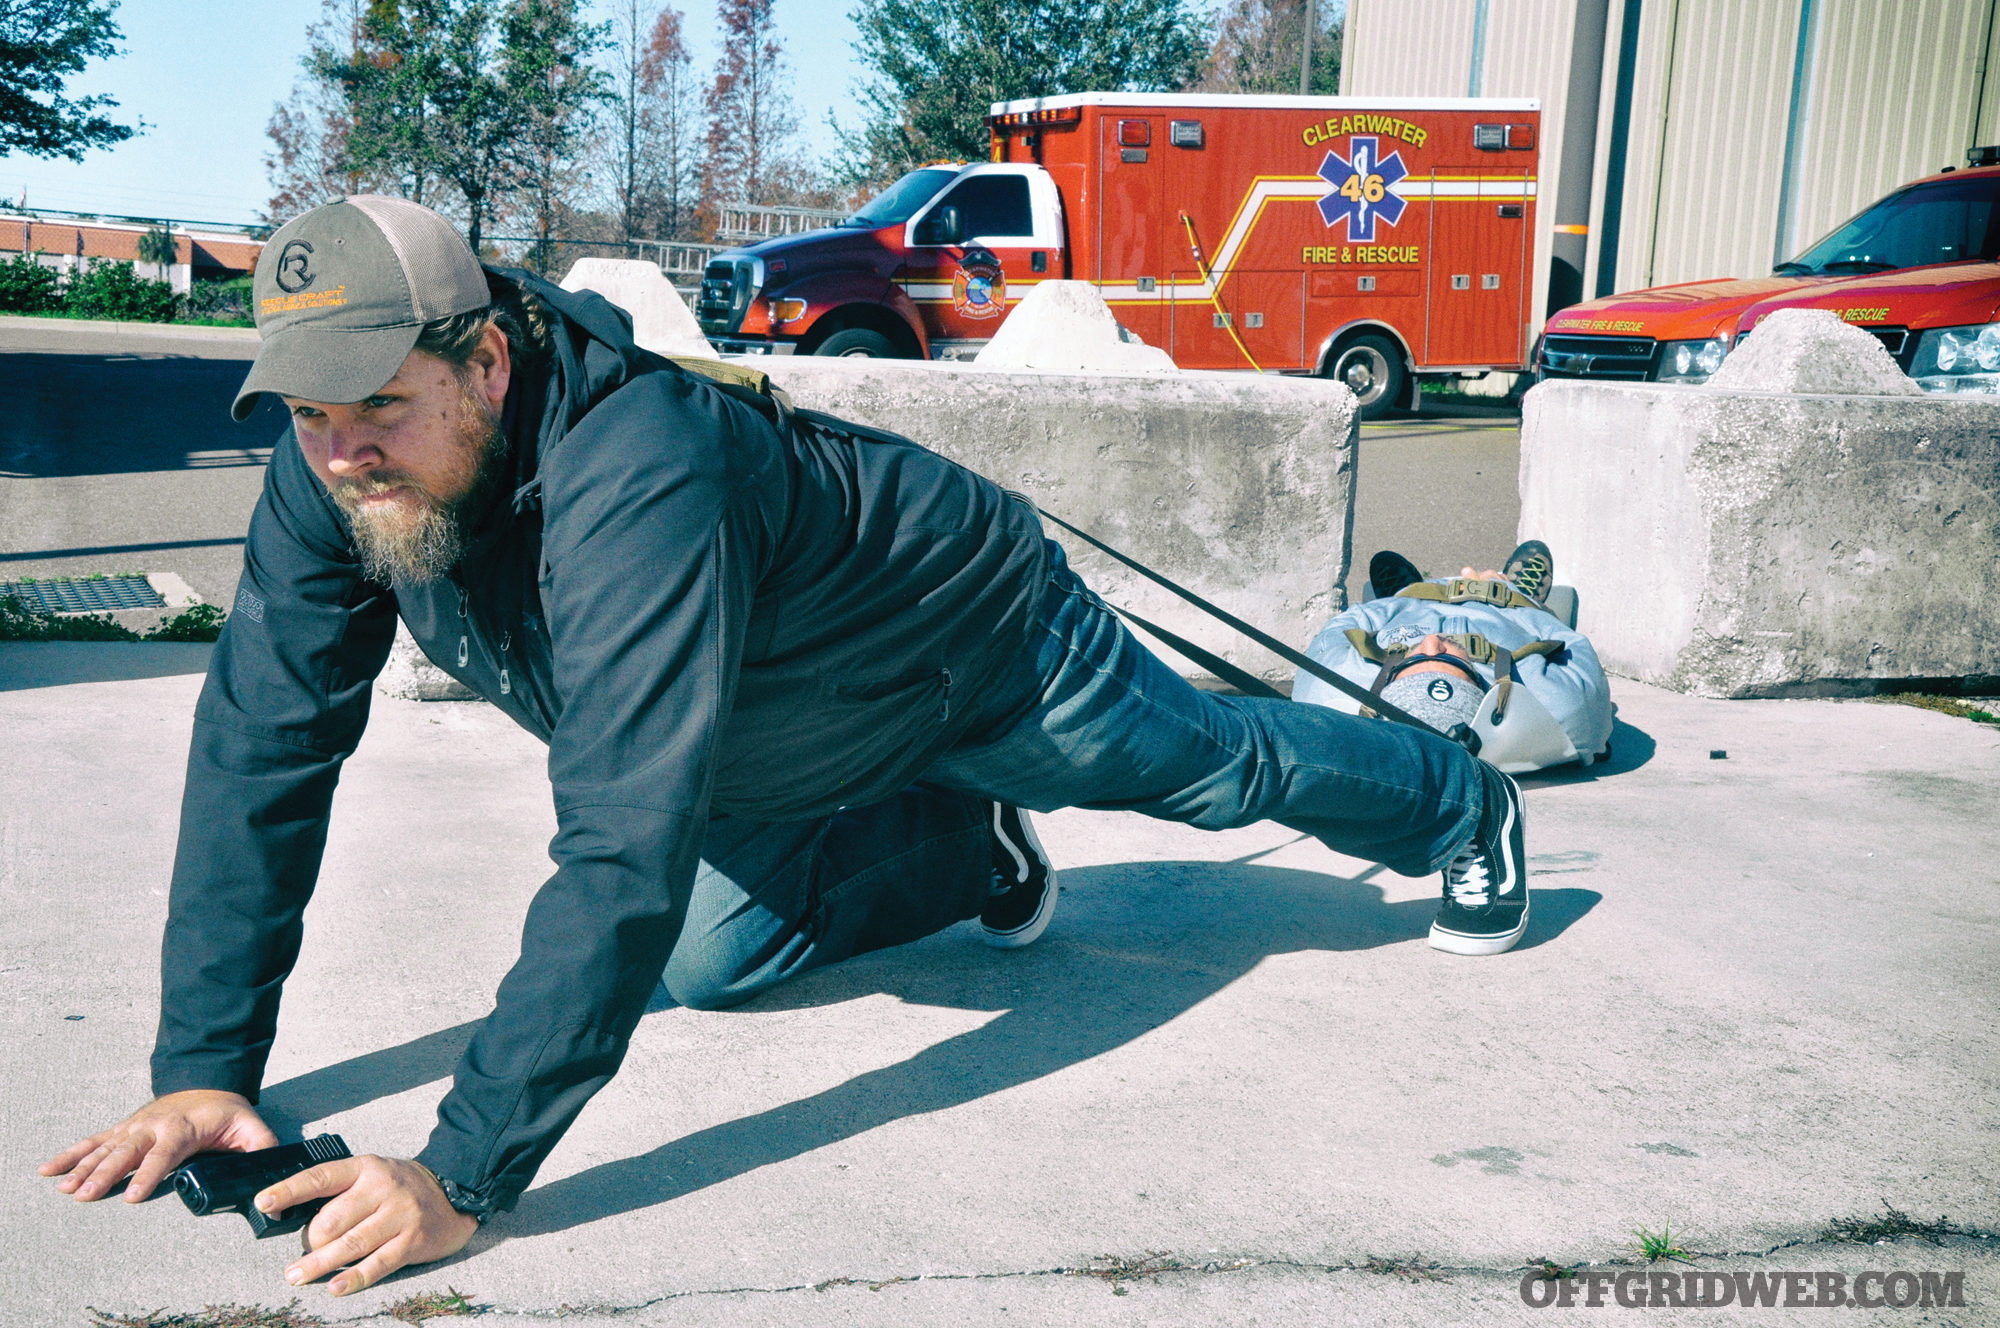 "It can be used to carry a casualty in a low ""bear-crawl"" position, minimizing exposure by maintaining a low profile when needed."